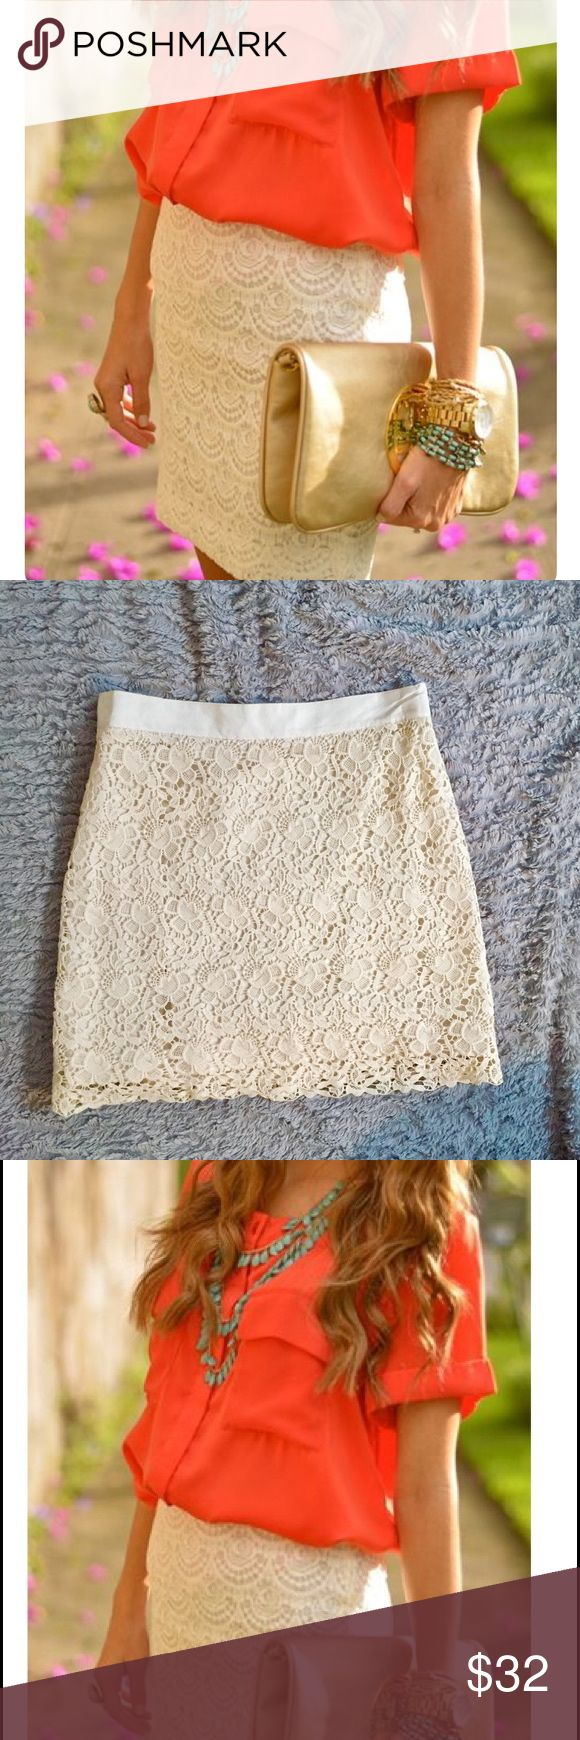 Cream Lace Skirt Feminine cream Lace skirt with zip back. Great piece for a work or party outfit! Ann Taylor Skirts